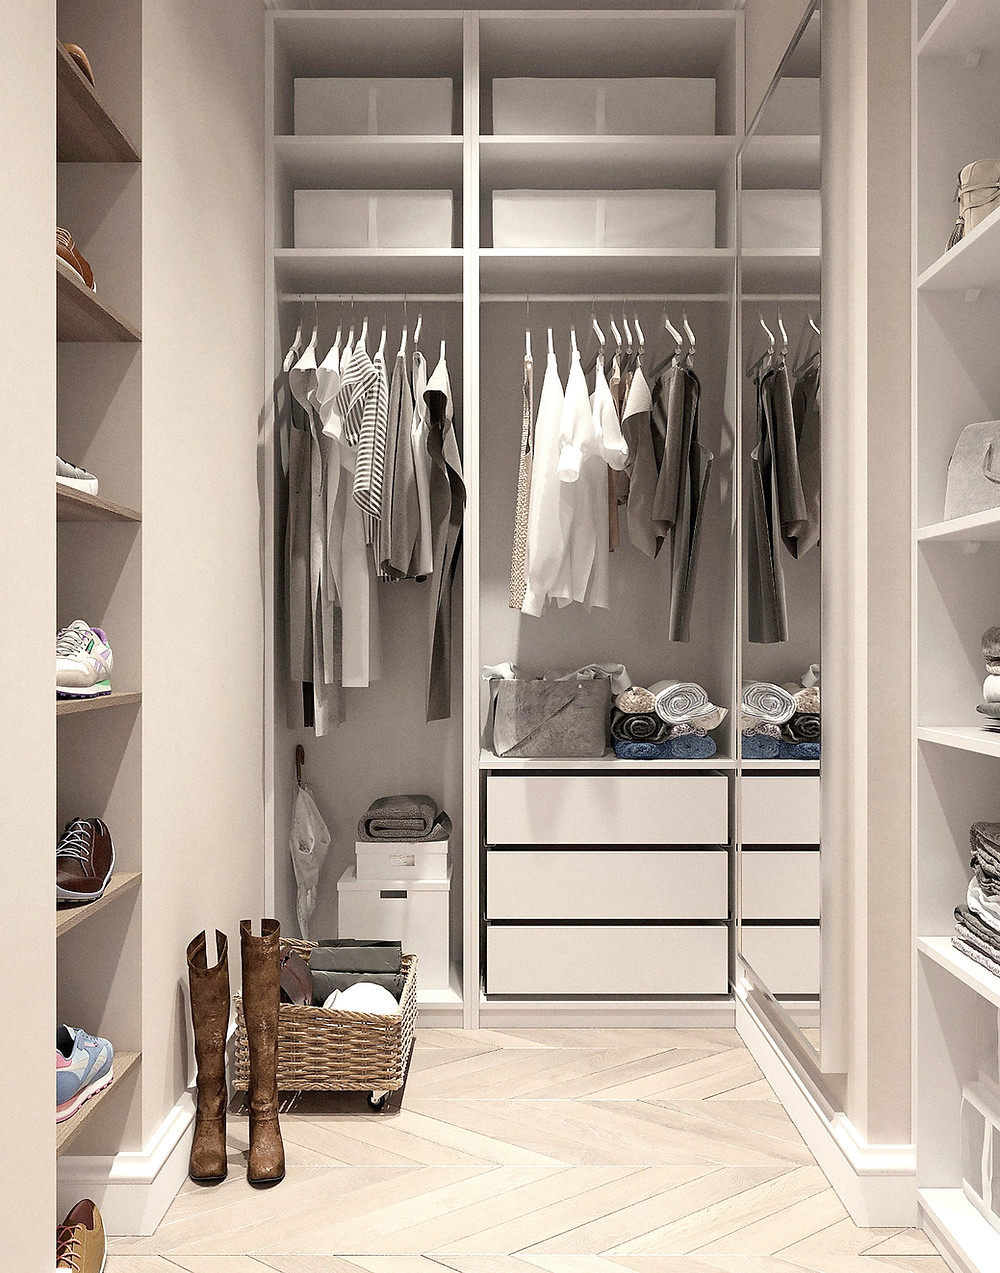 Social Distancing Home Project Ideas - Closet Organization